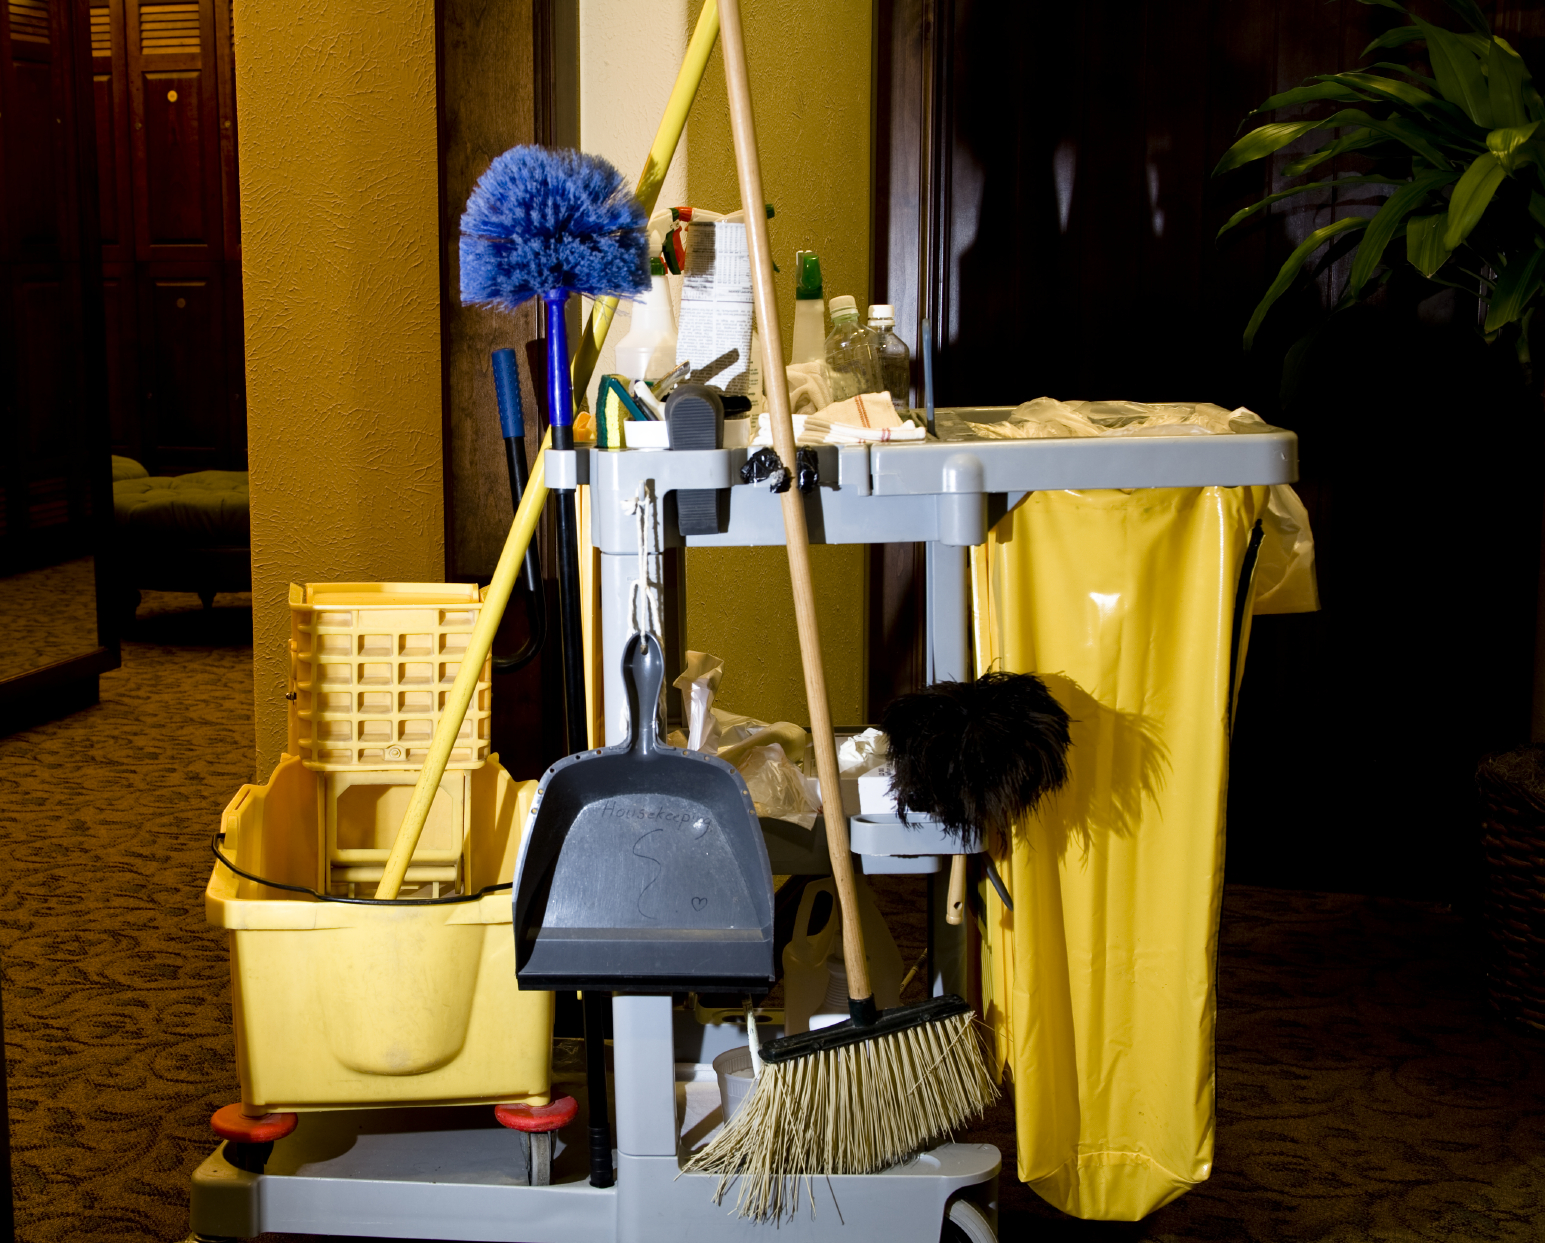 Finding A Janitorial Service For Your Office